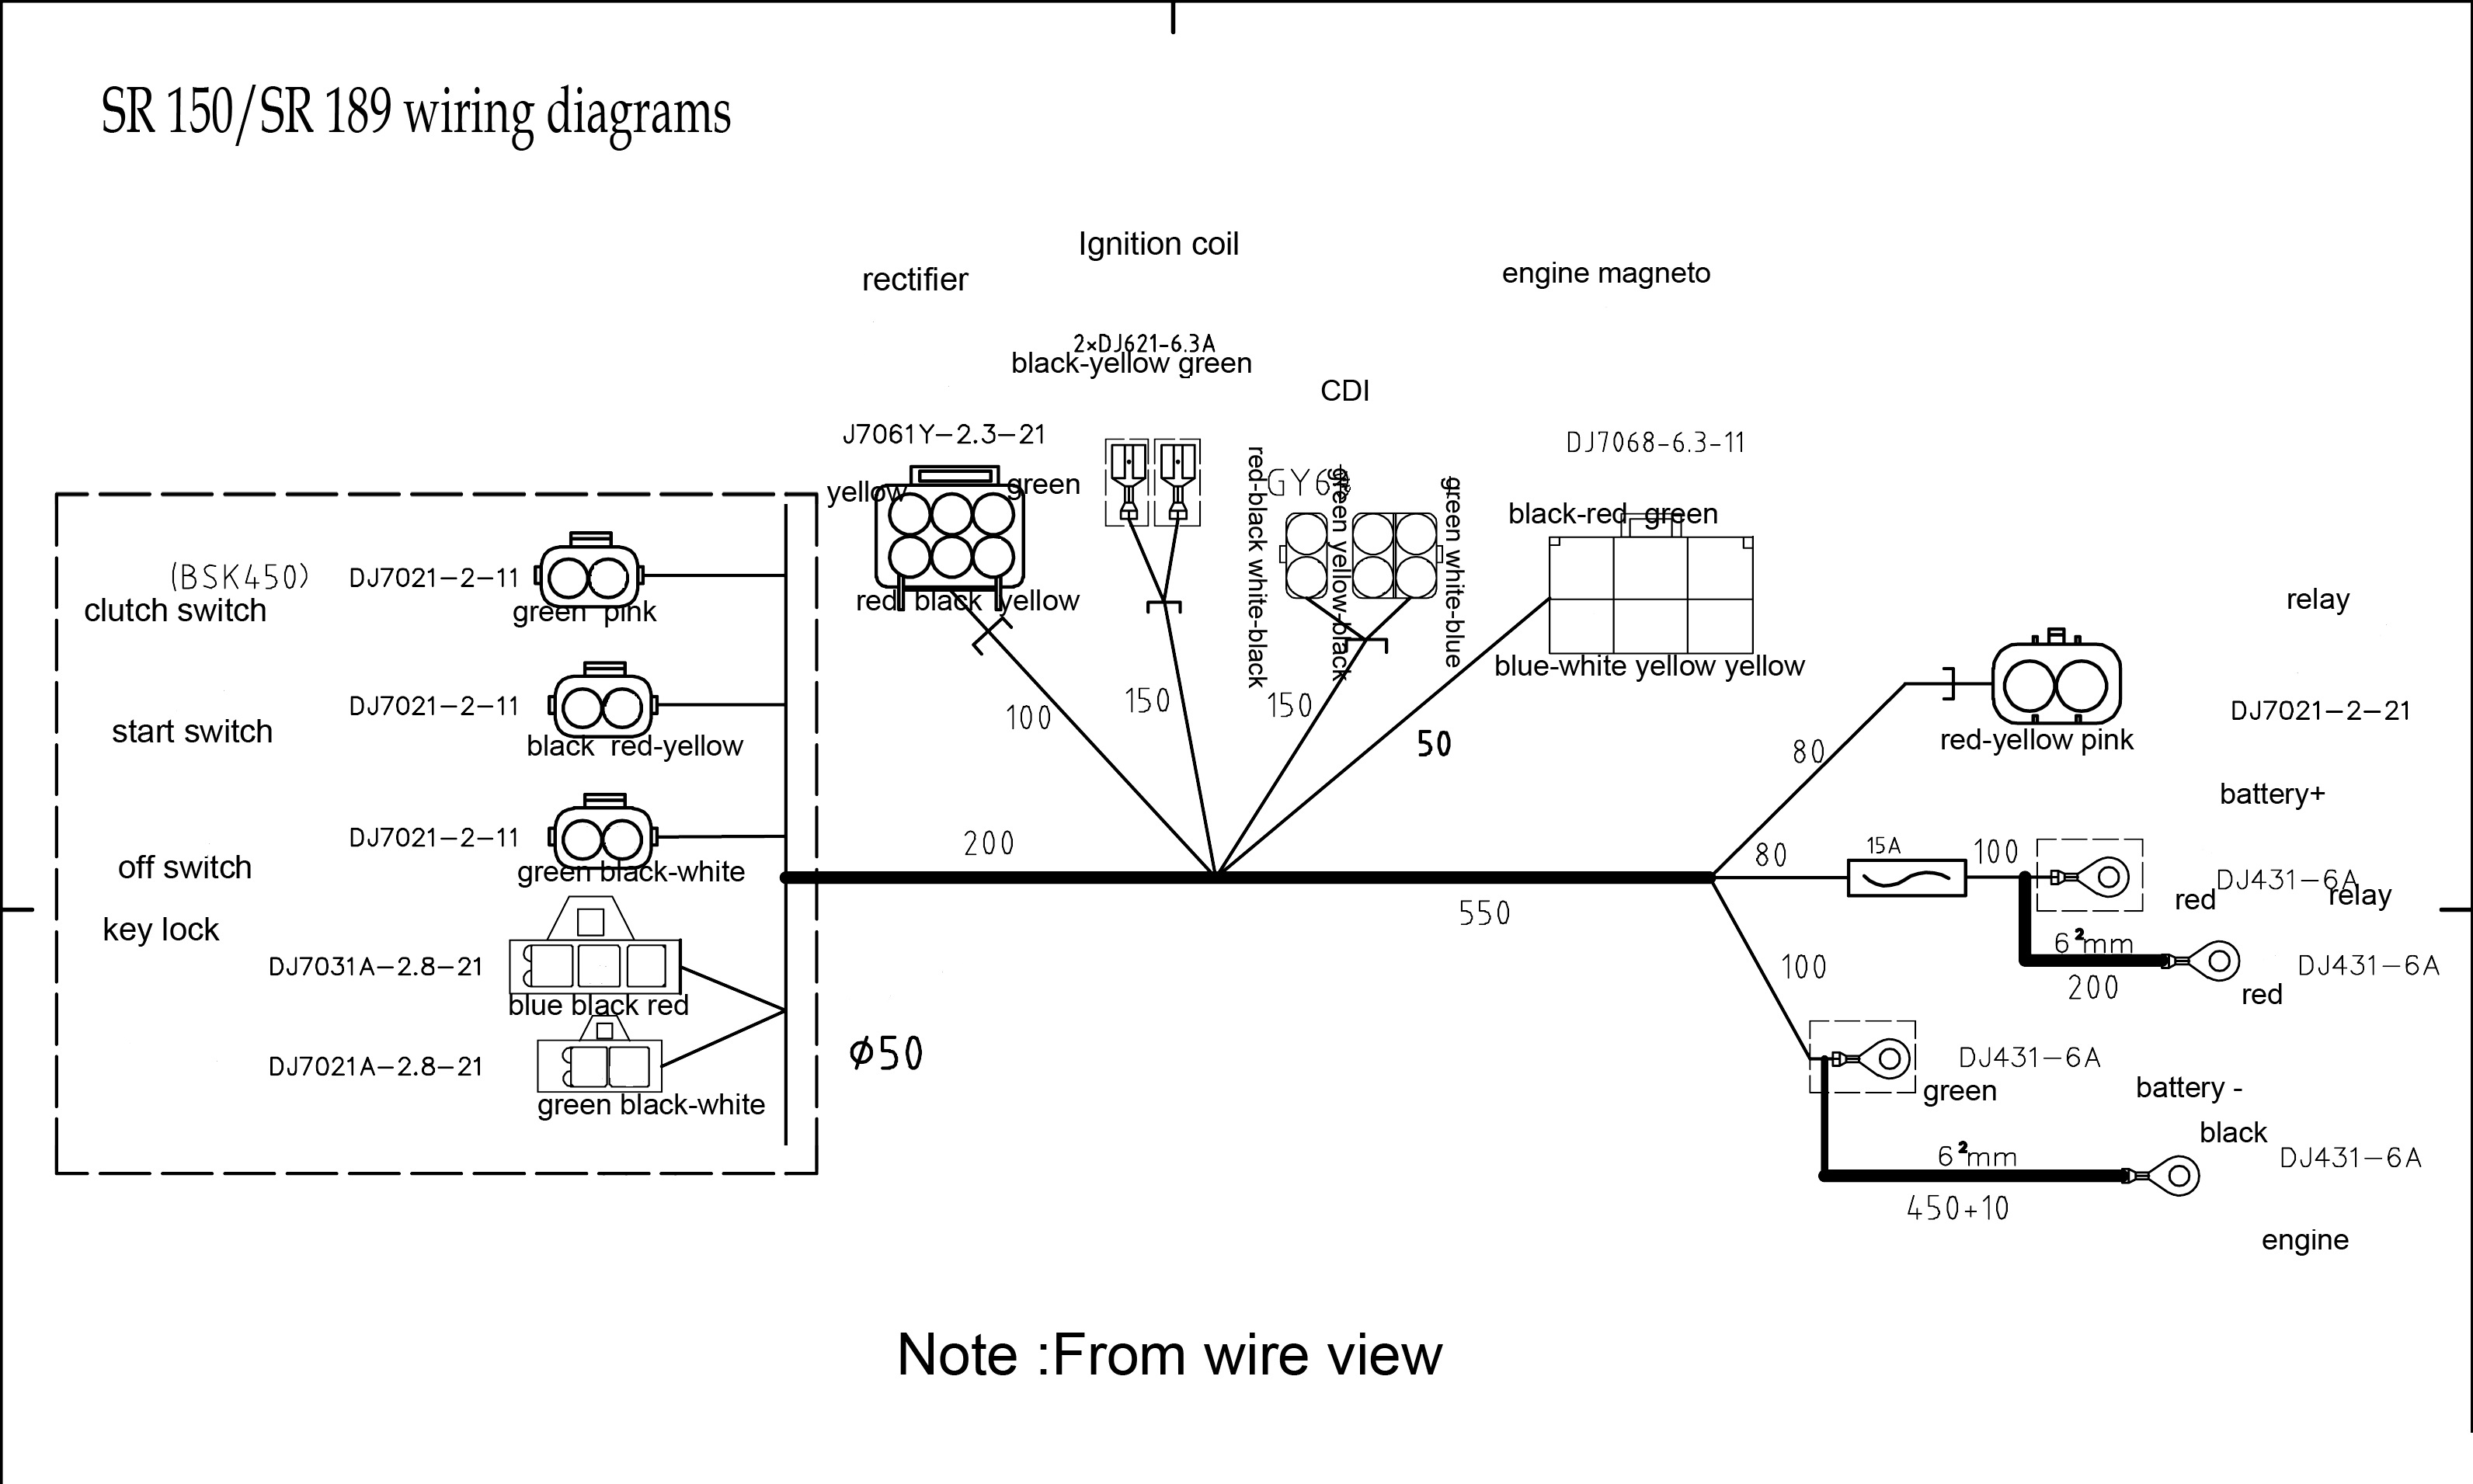 Lifan Pit Bike Wiring Diagram - Wiring Diagrams Dock